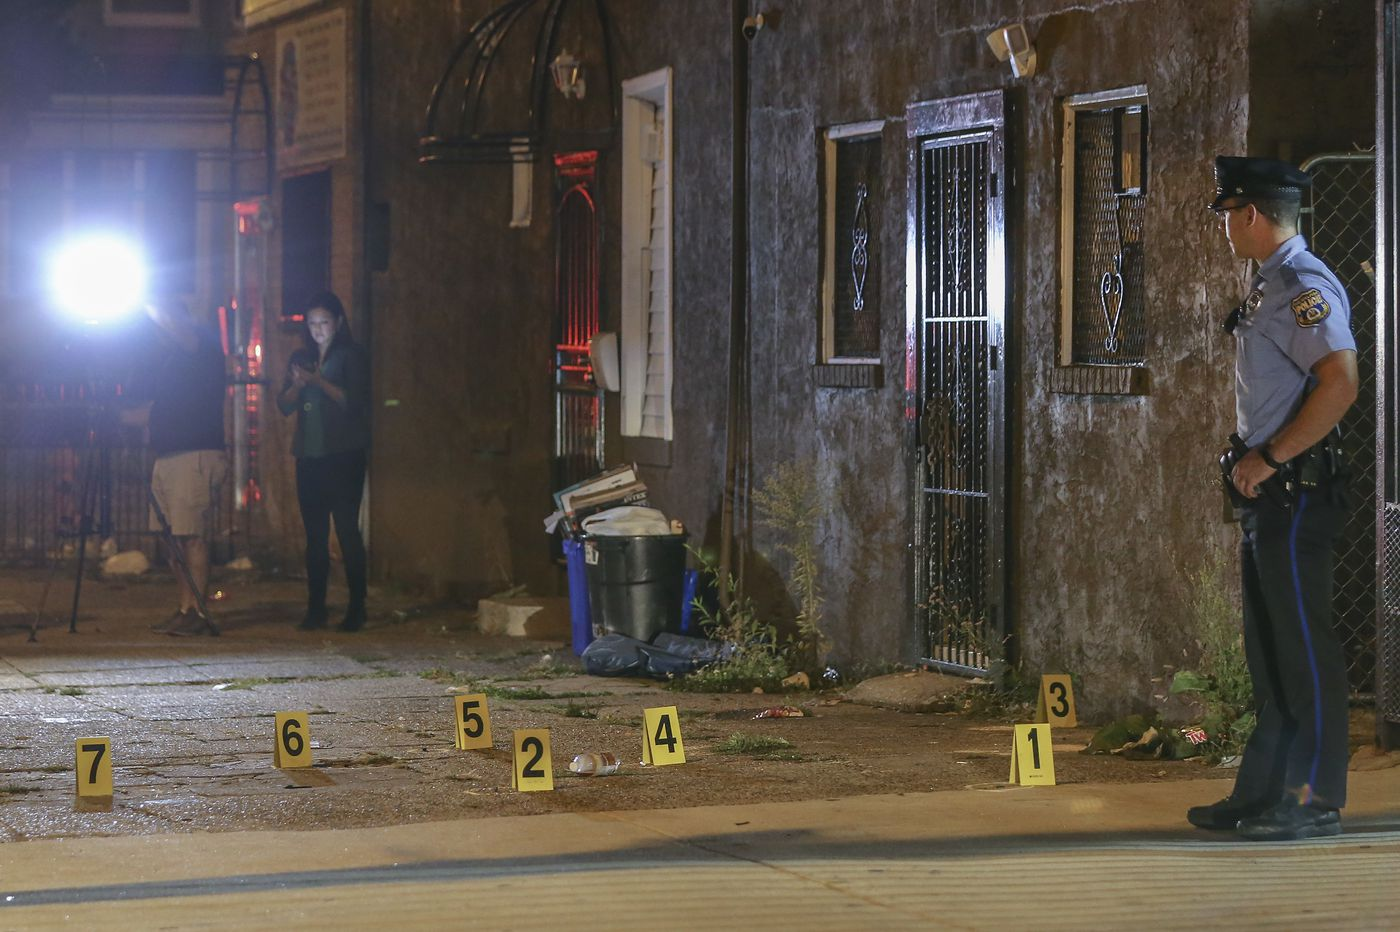 Shots fired at police officer in Southwest Philly